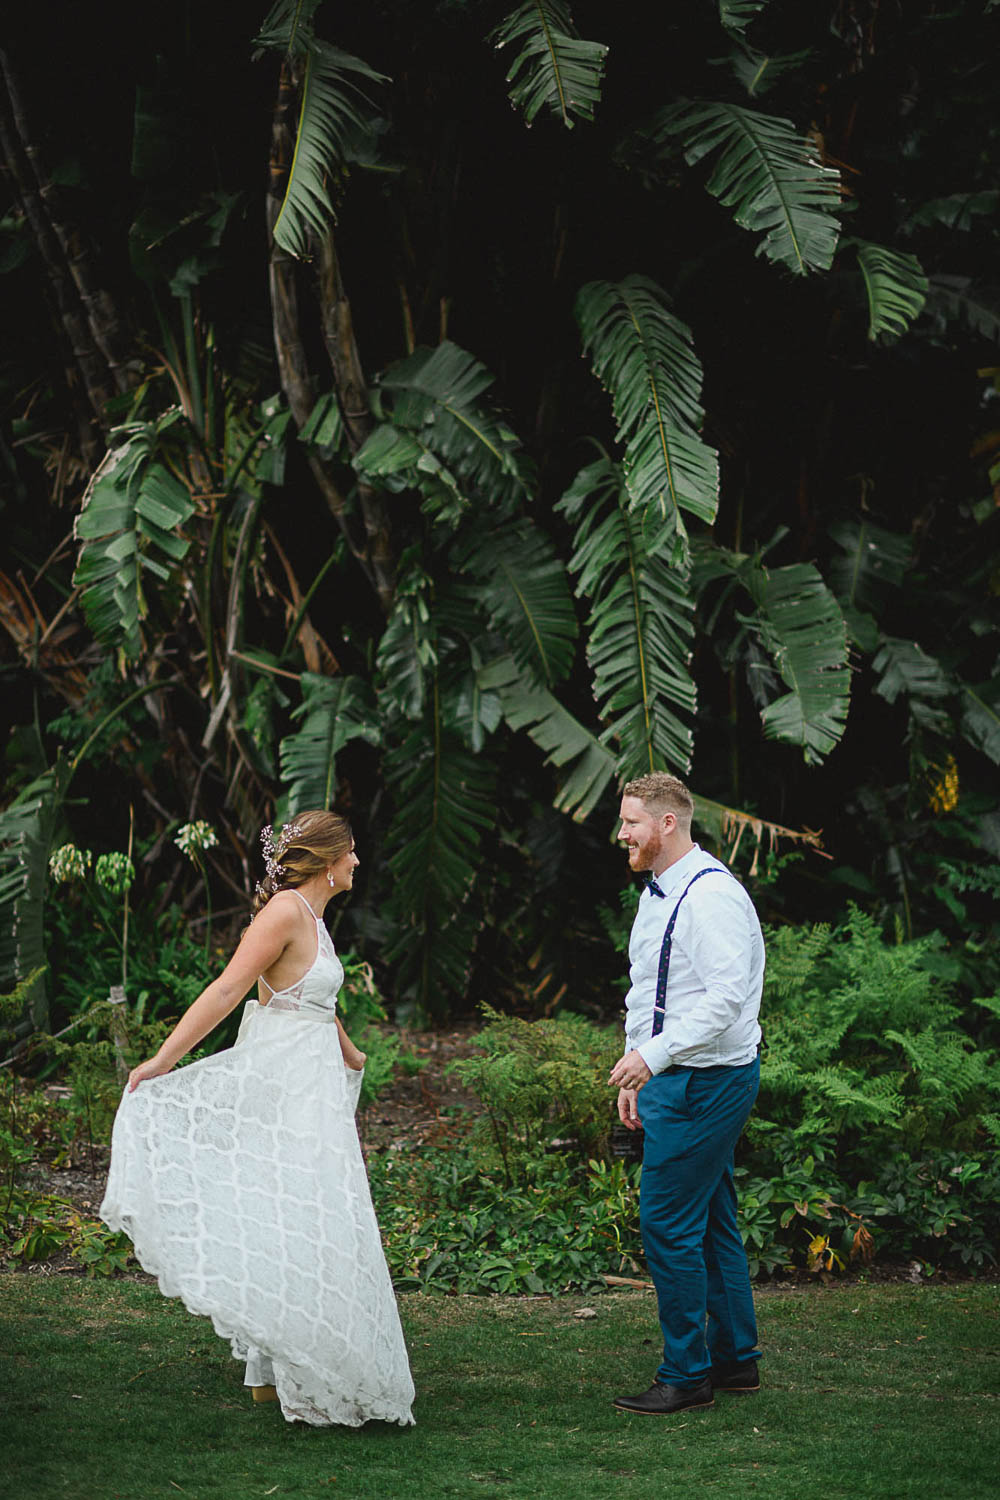 Bohemian Prints - Bohemian Wedding Jess and Matt-6.jpg